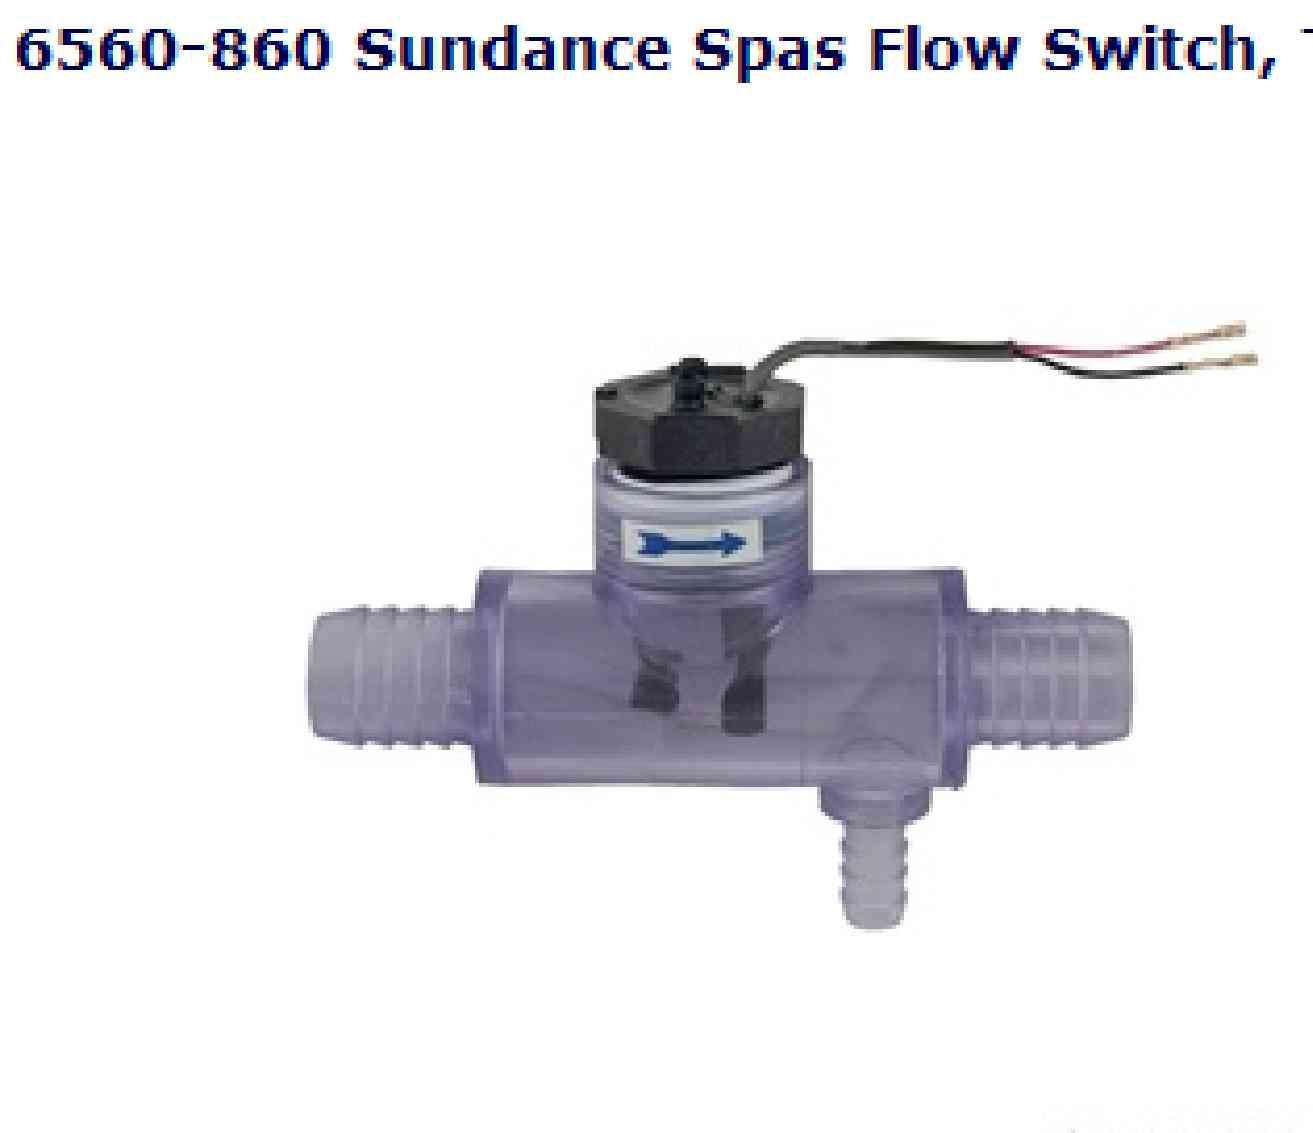 For Hot Tub Flow Switch Wiring Diagram - Trusted Wiring Diagram •